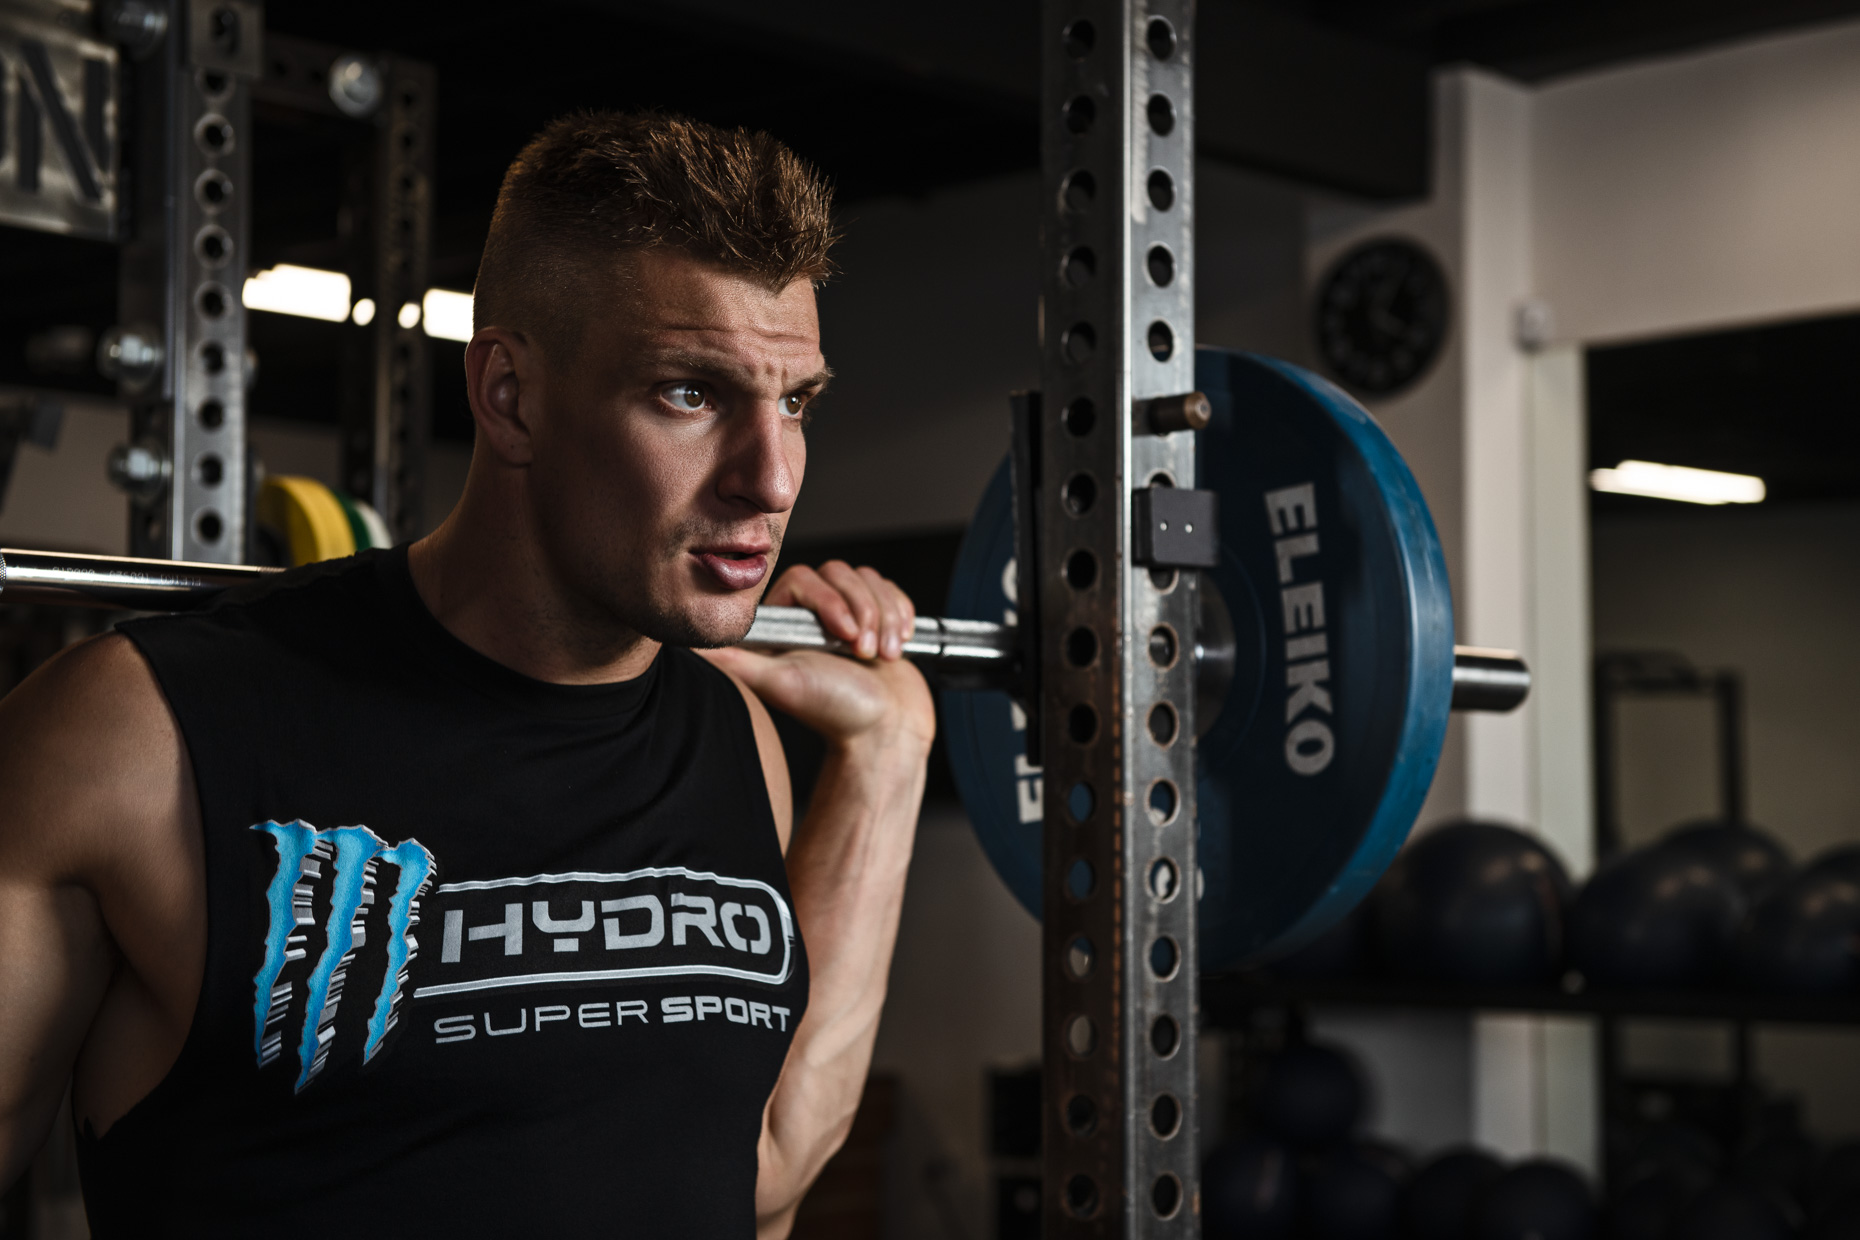 Rob Gronkowski (Gronk) for Monster Hydro Super Sport